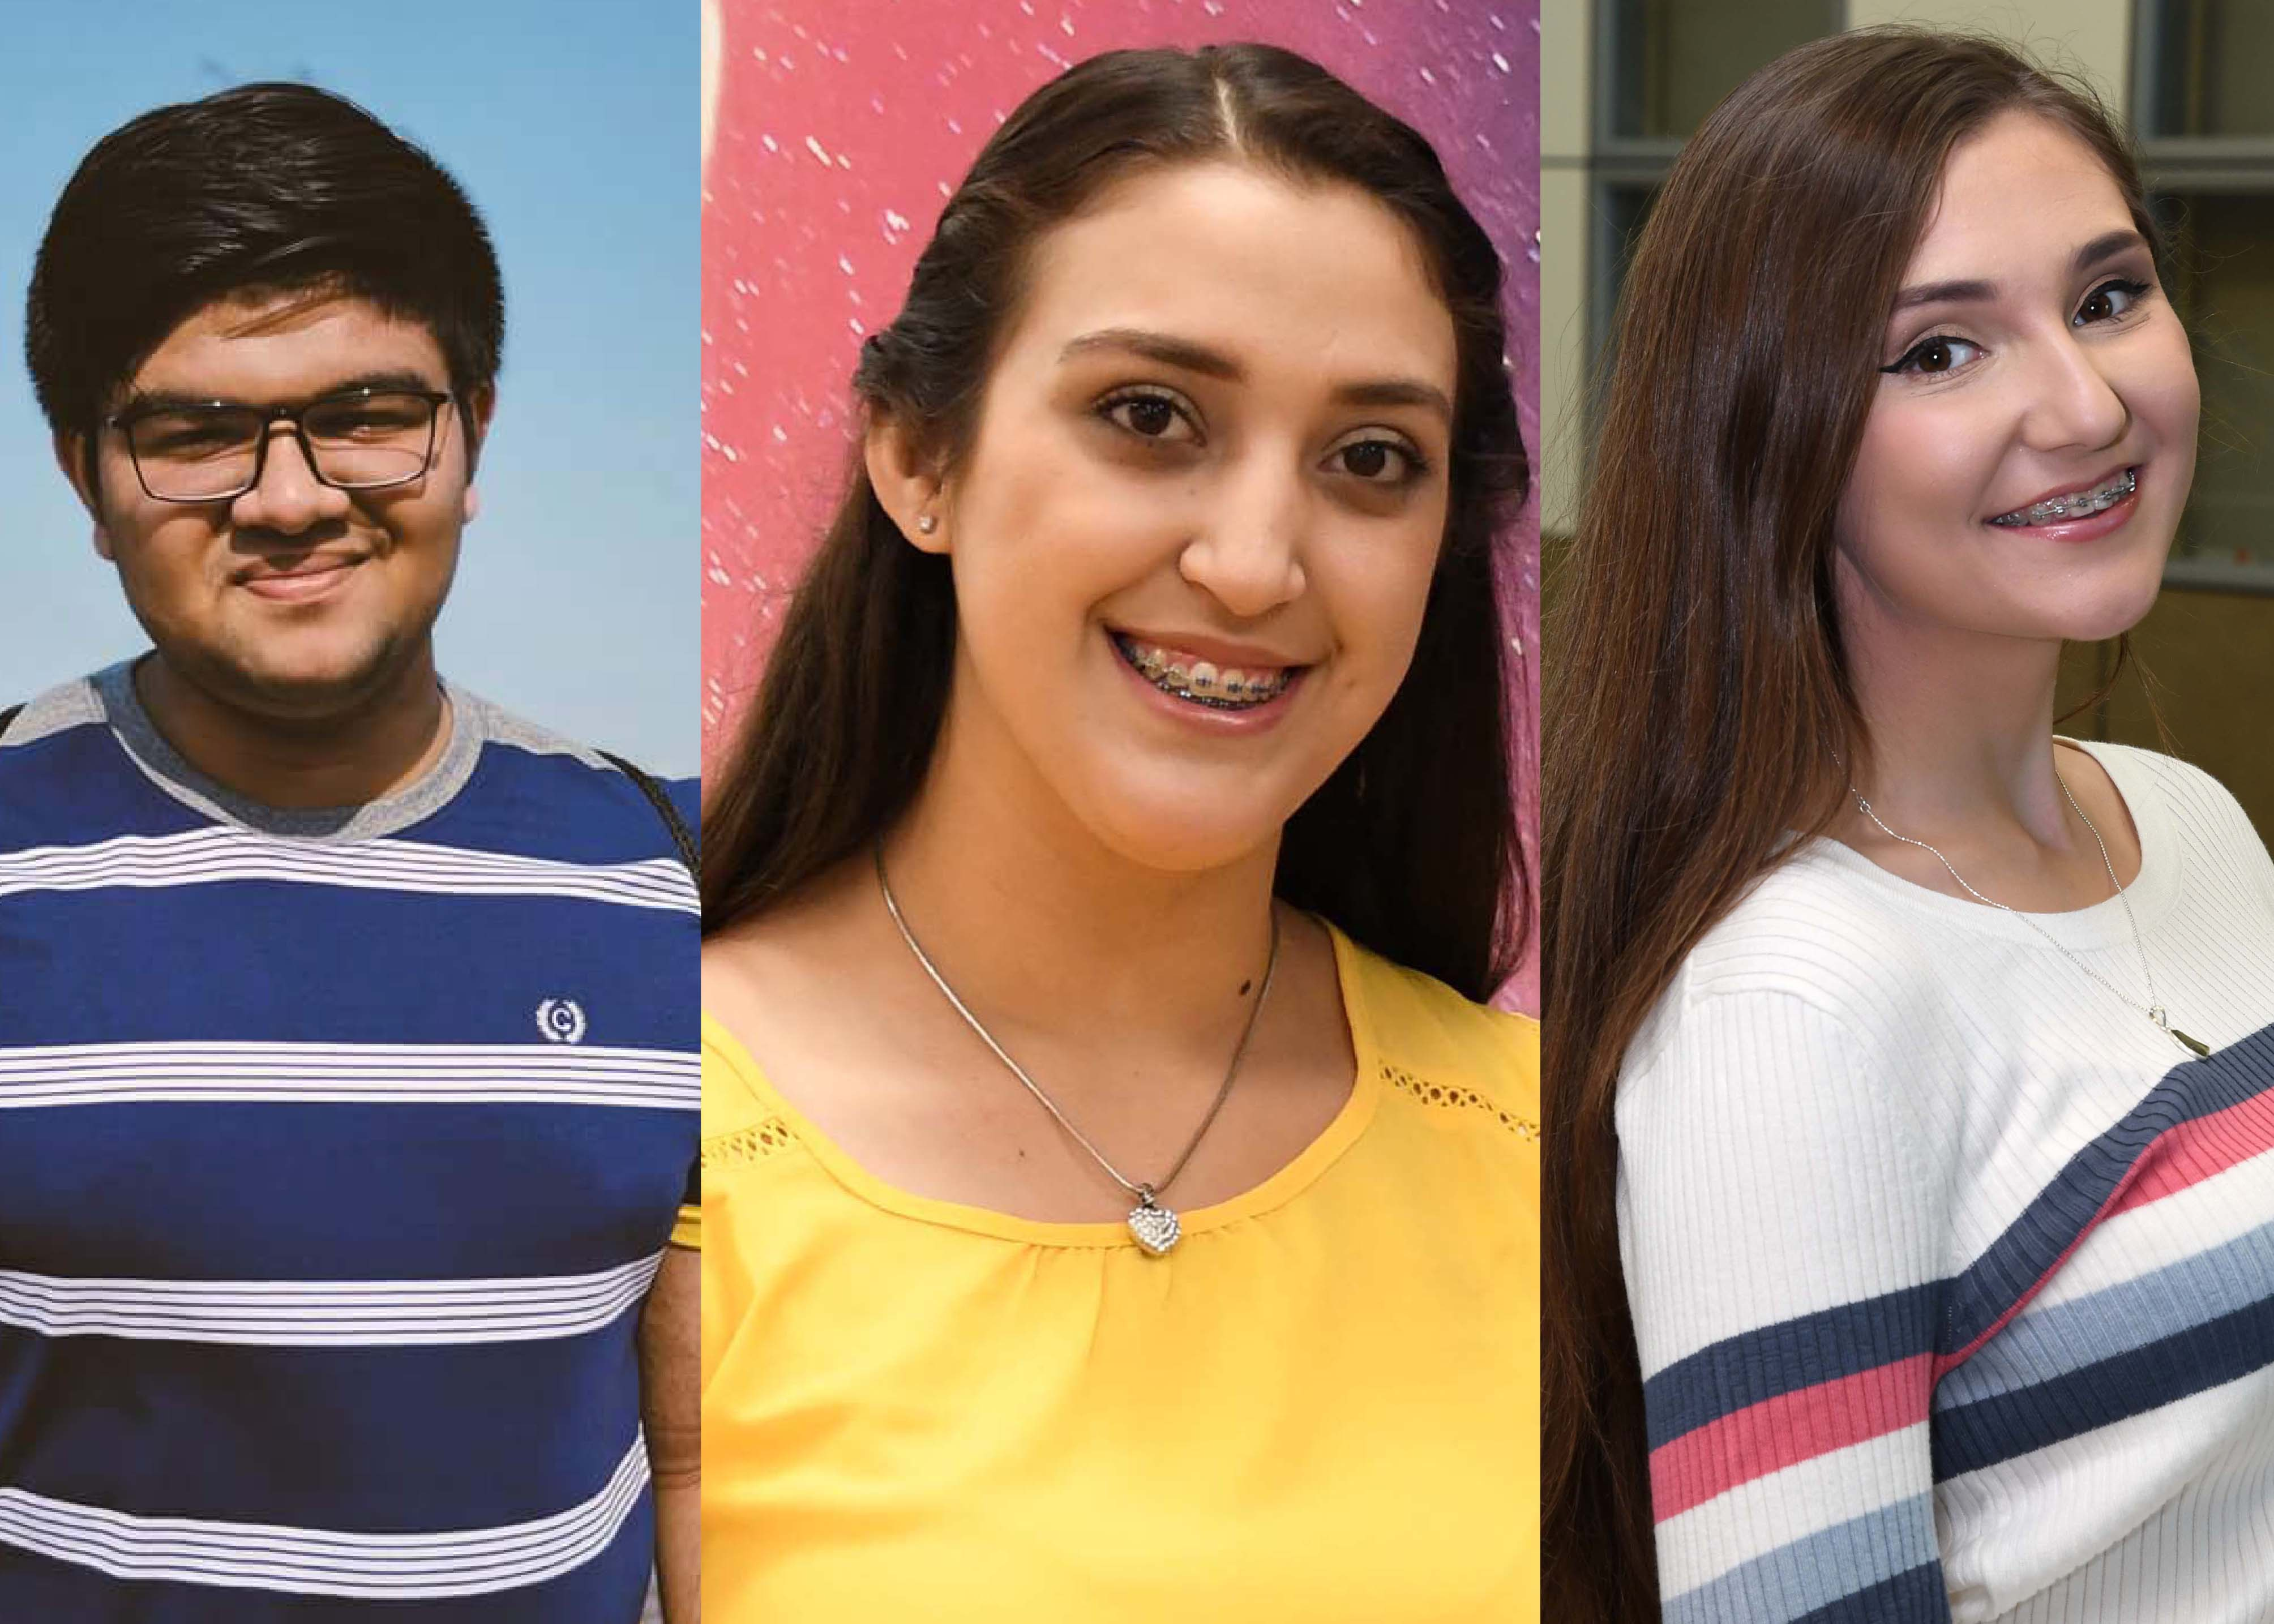 San Jacinto College students named 2018 Coca-Cola Leaders of Promise Scholars